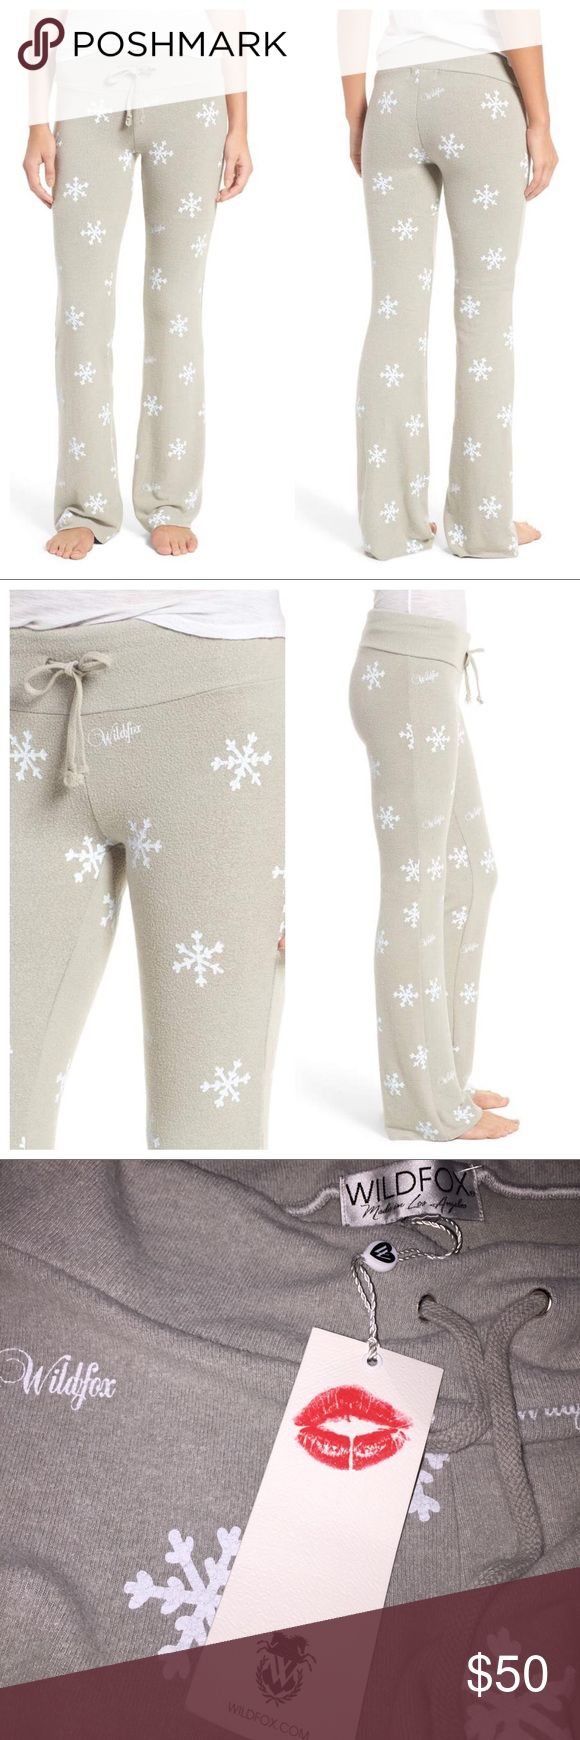 "Wildfox Winter Wonderland Lounge Pants Let it snow, let it snow, let it snow—both outside and all over these ultra-snuggly lounge pants. The soft stretch-knit fabric and wide drawstring waistband will keep you perfectly comfy through the worst winter storms. •32 1/2"" inseam; 19"" leg opening; 8 1/2"" front rise; 12"" back rise (size Medium) •Drawstring waist •47% rayon, 47% polyester, 6% spandex •Machine wash cold, tumble dry low •Made in the USA •Color is slightly darker than stock photos…"